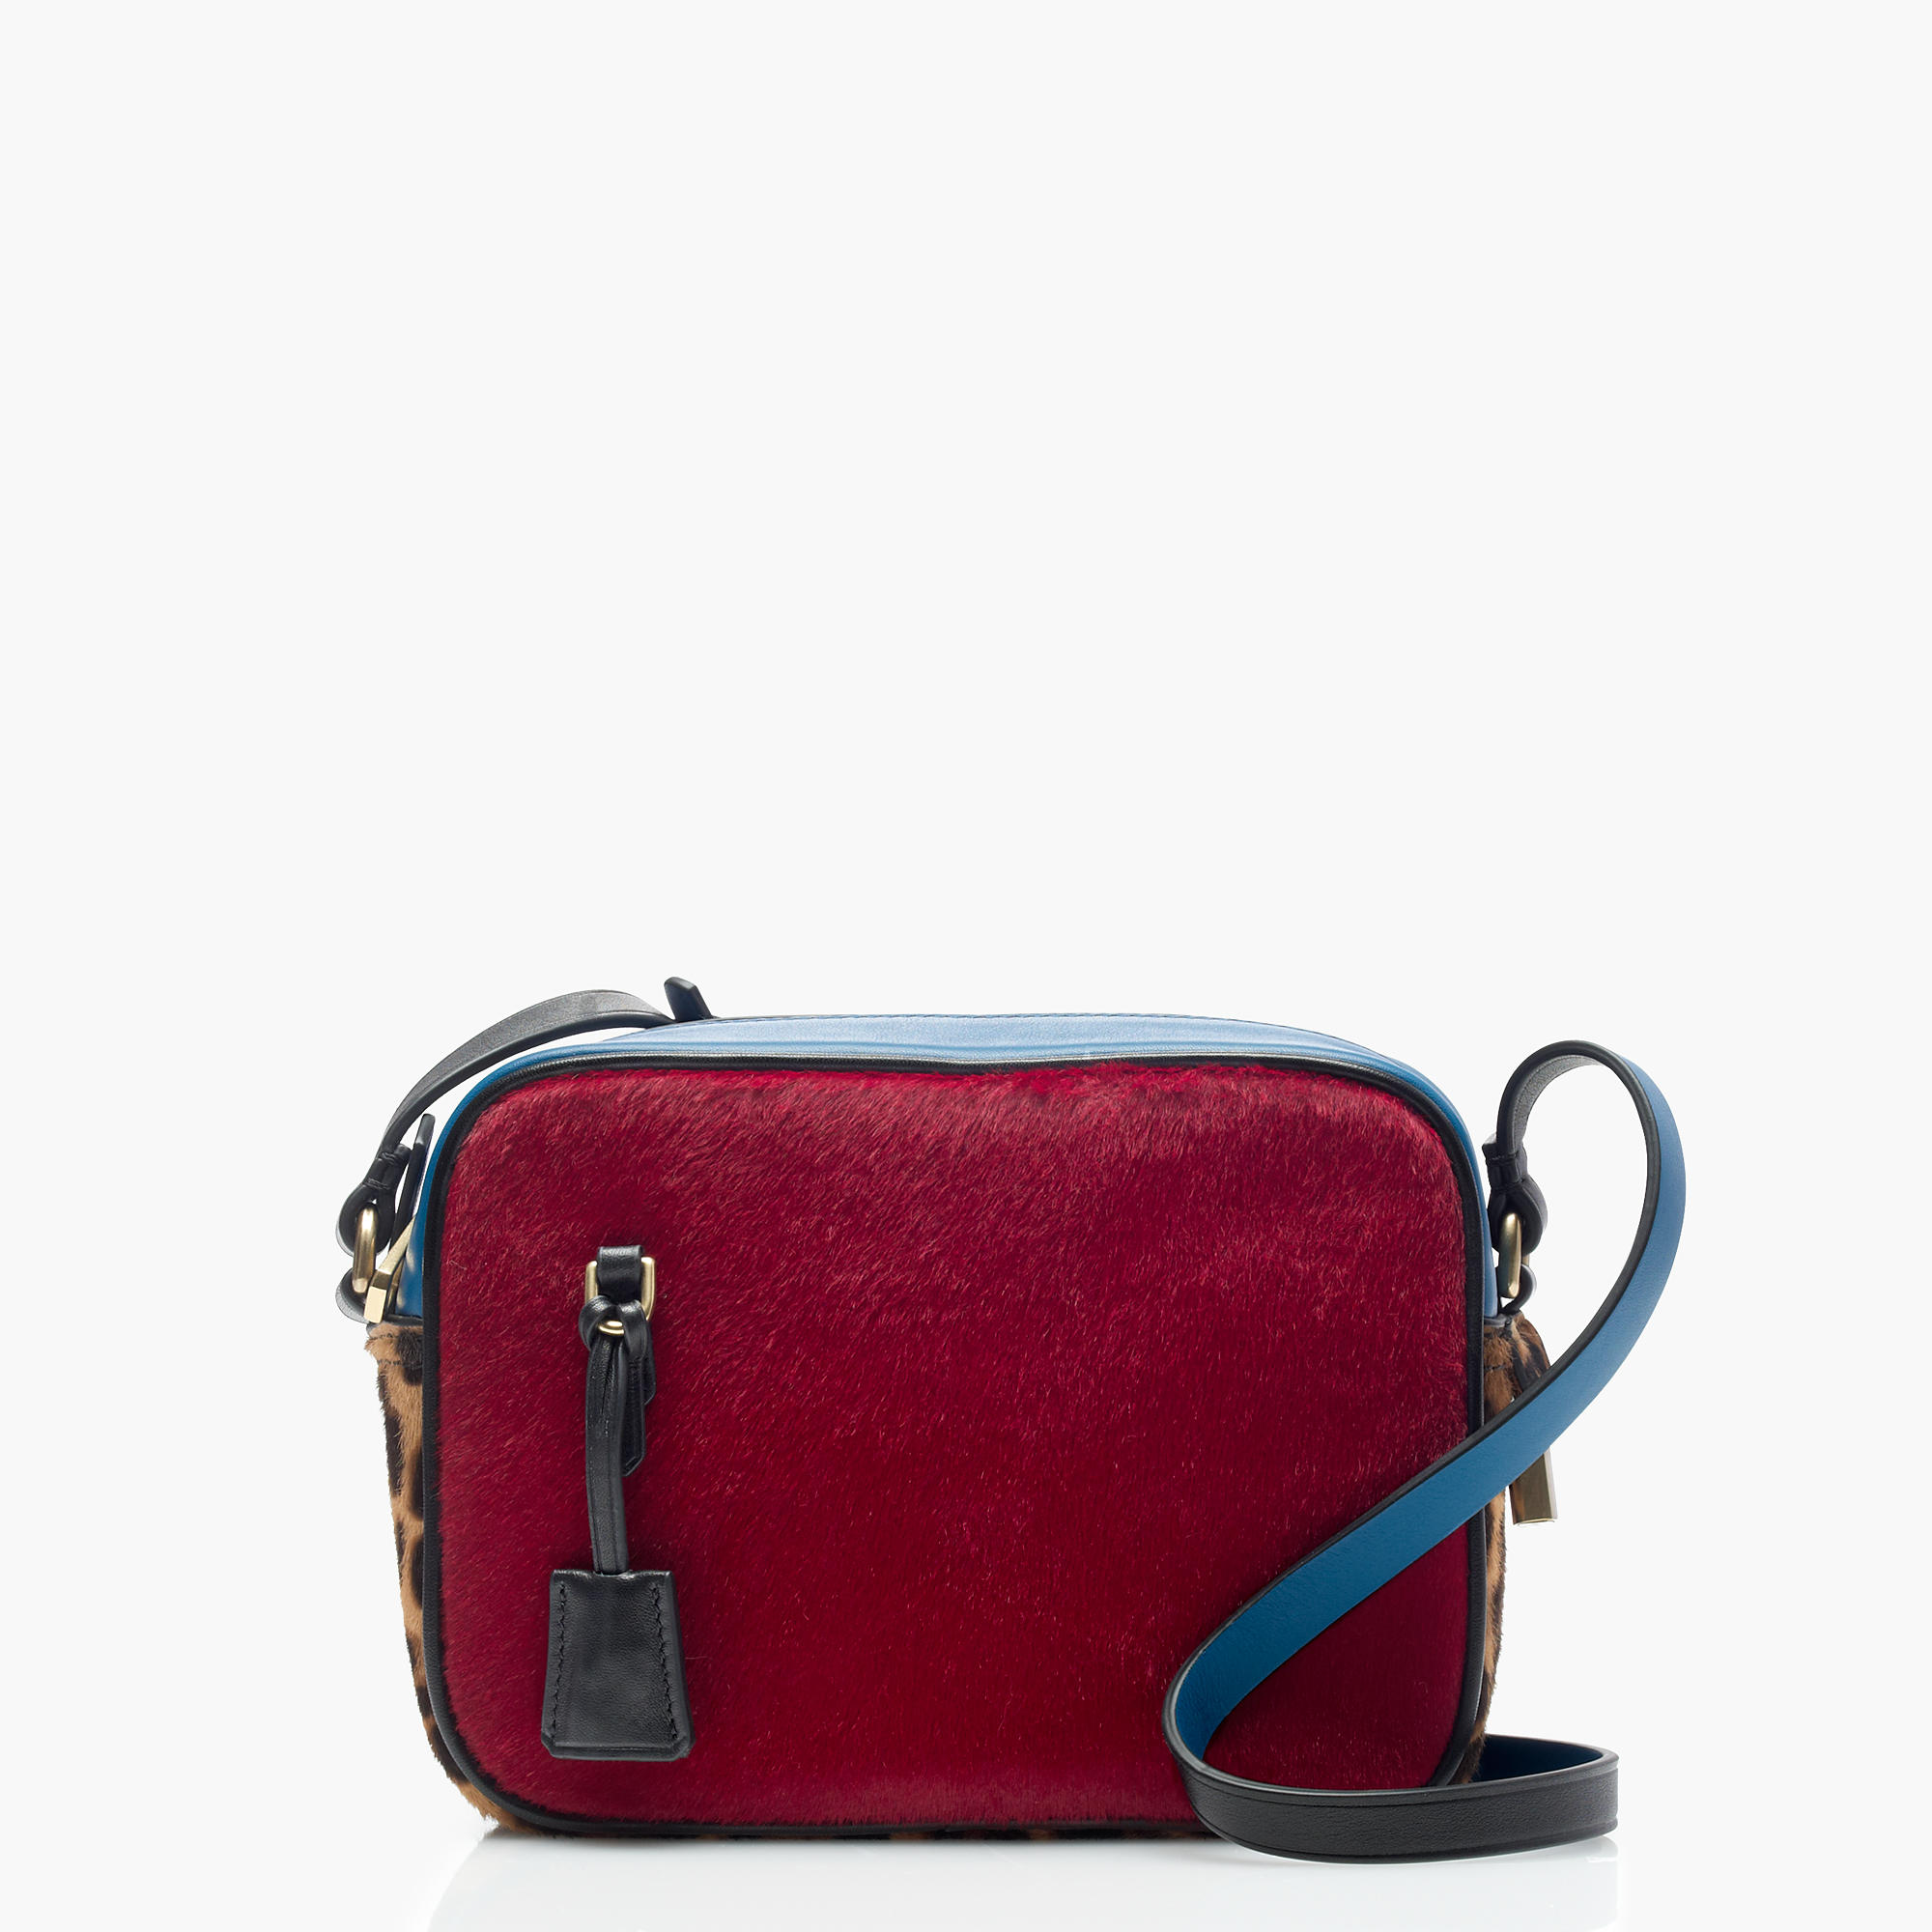 J.Crew Signet Bags in Printed Italian Calf Hair, Bright Ruby